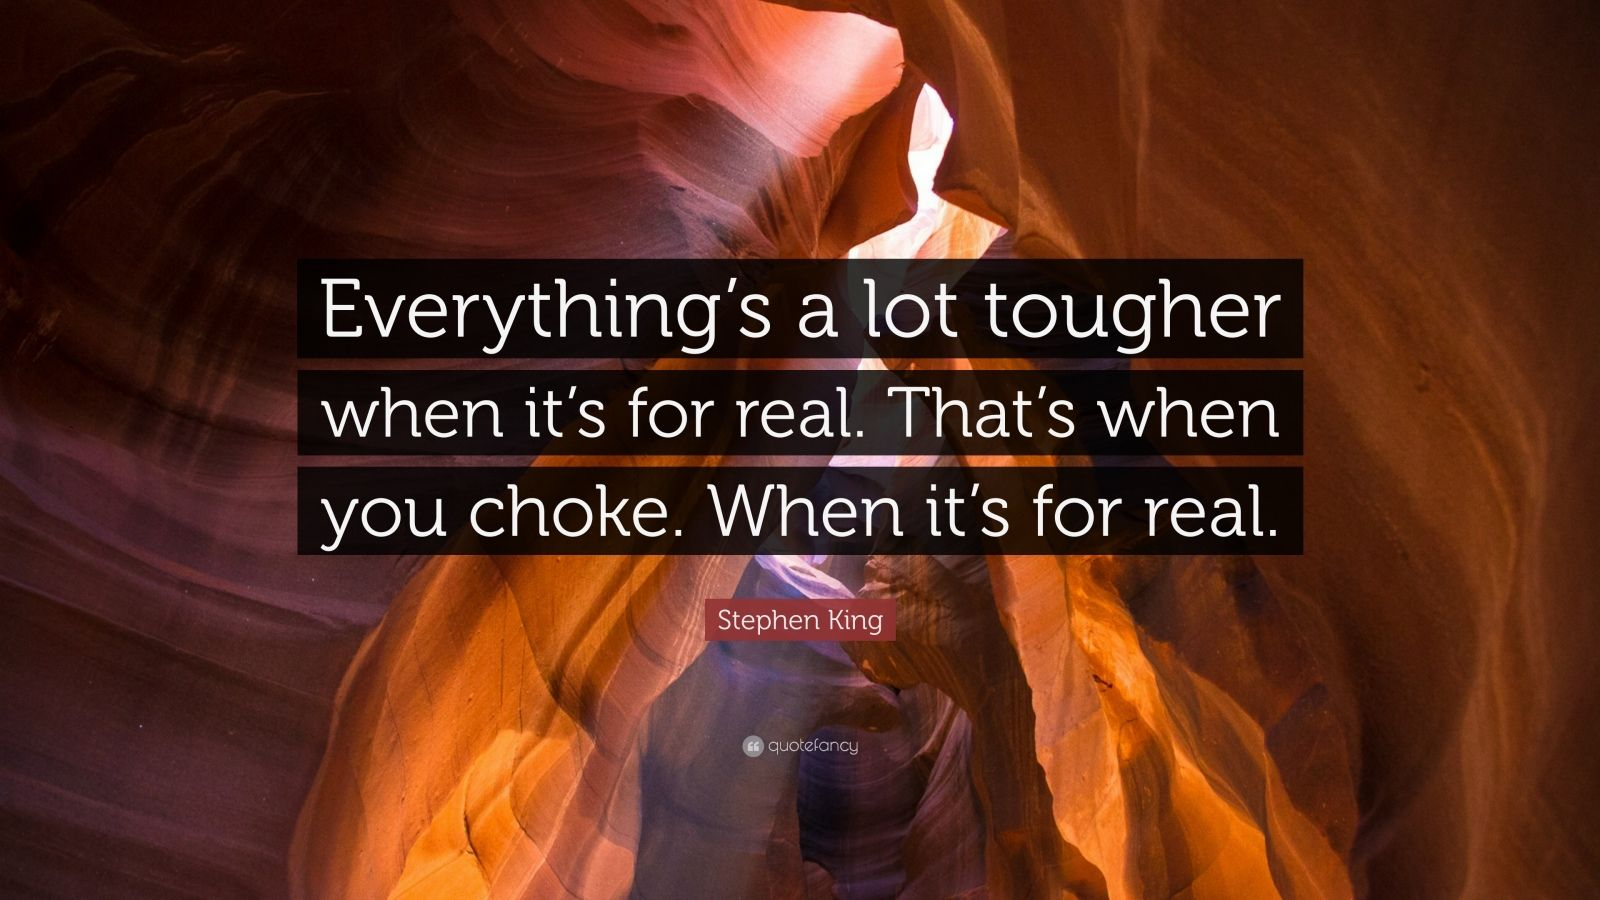 """Stephen King Quote: """"Everything's a lot tougher when it's for real. That's when you choke. When it's for real."""""""